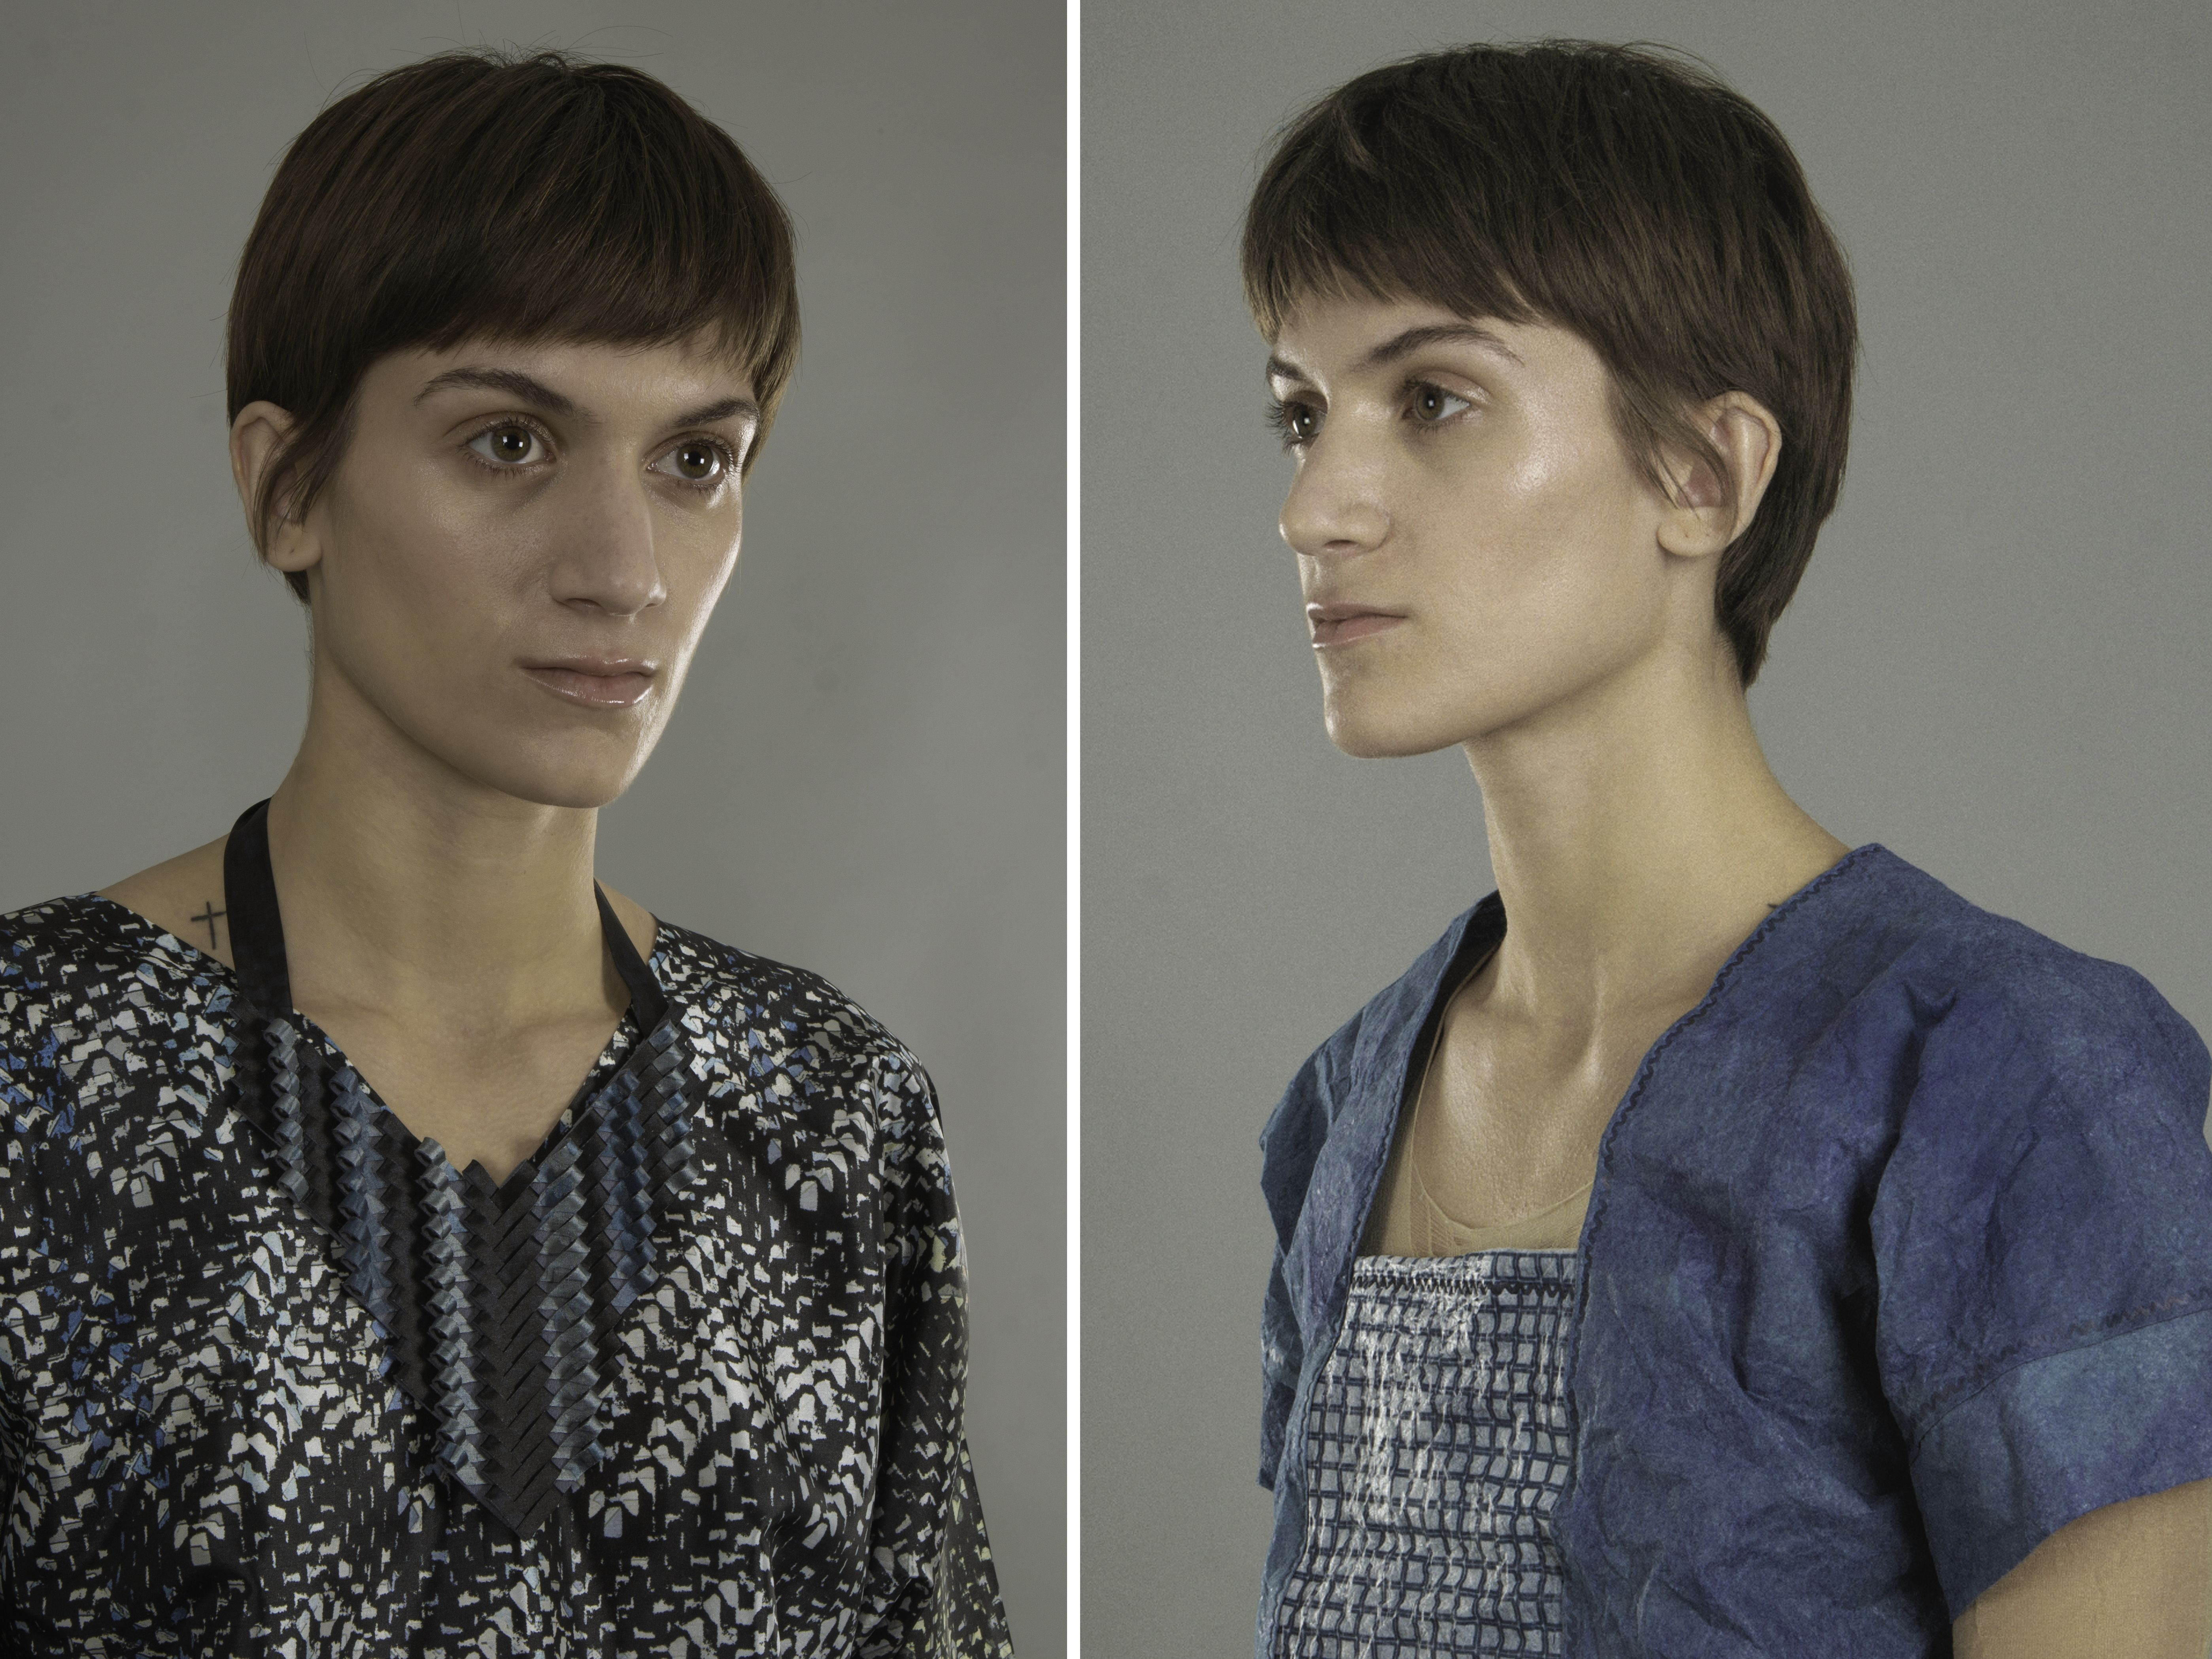 Three images of model wearing various materials